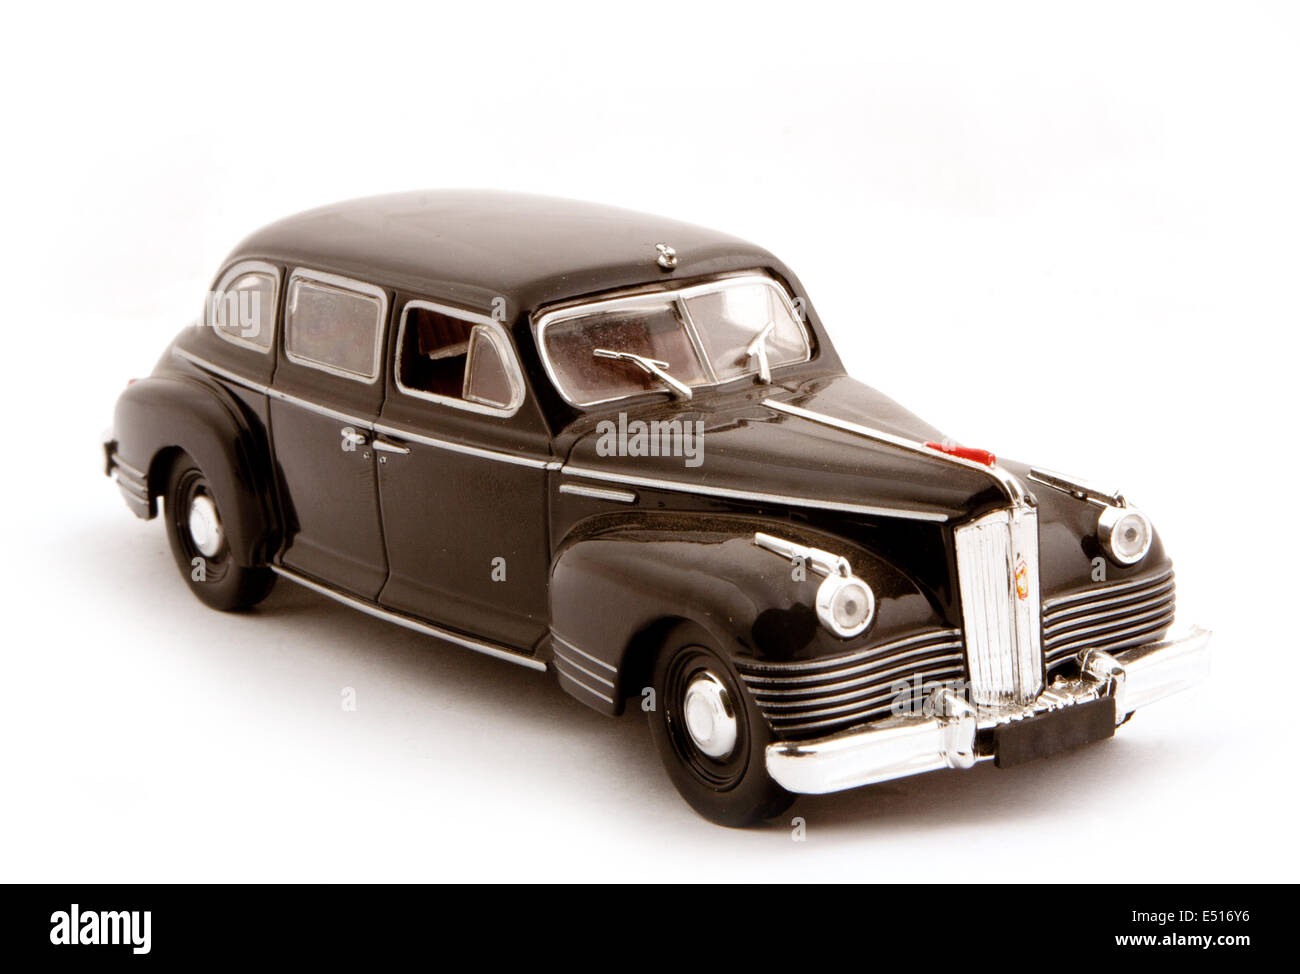 Collection scale car model - Stock Image